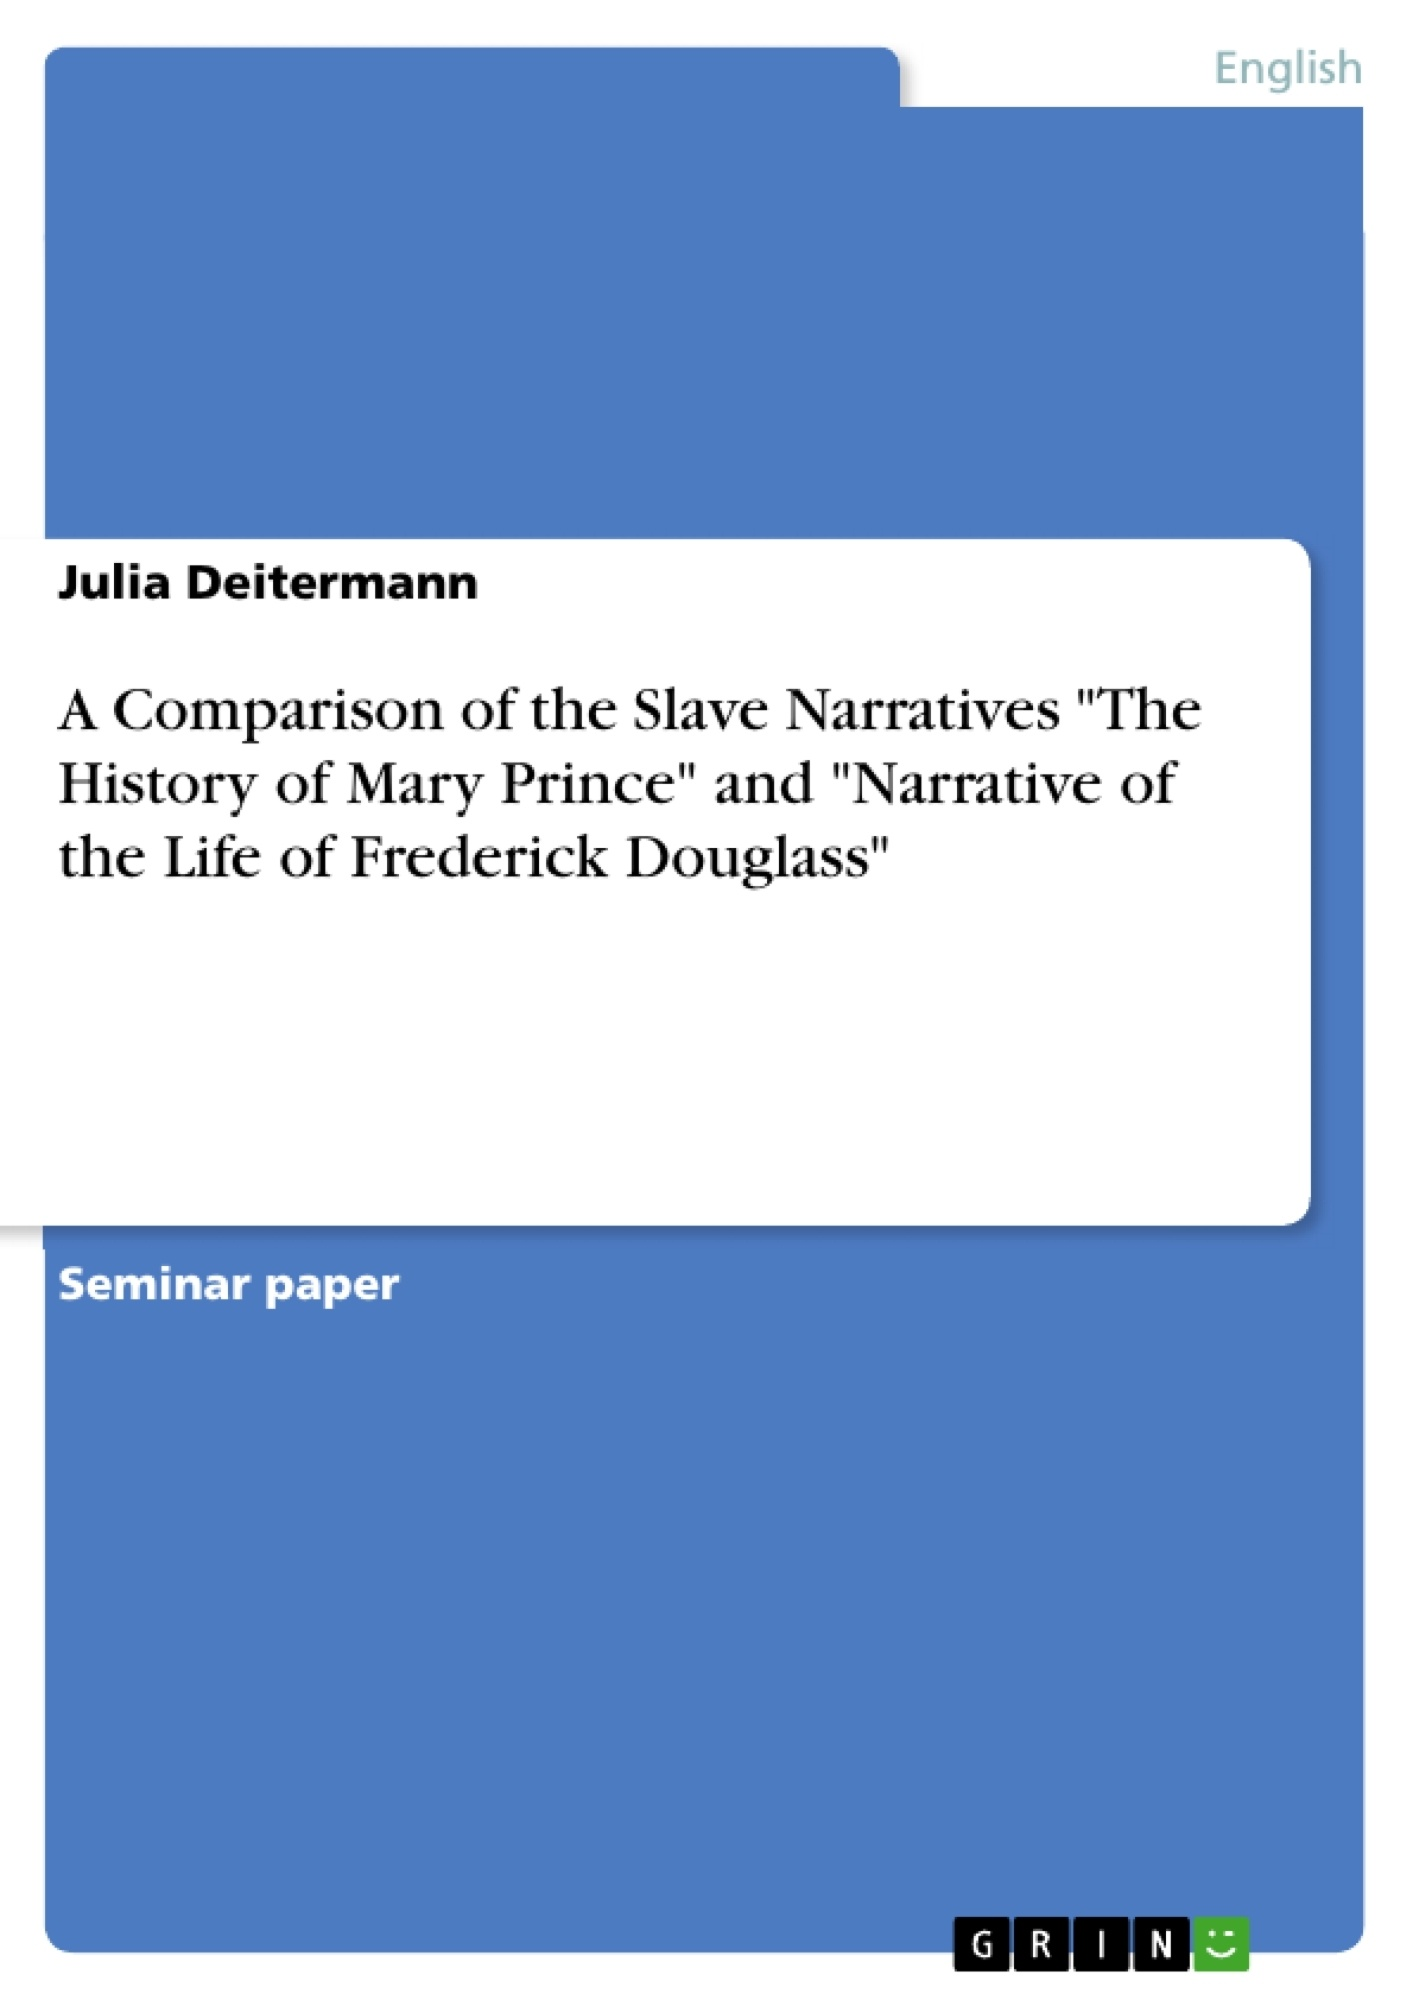 Thesis on slave narratives